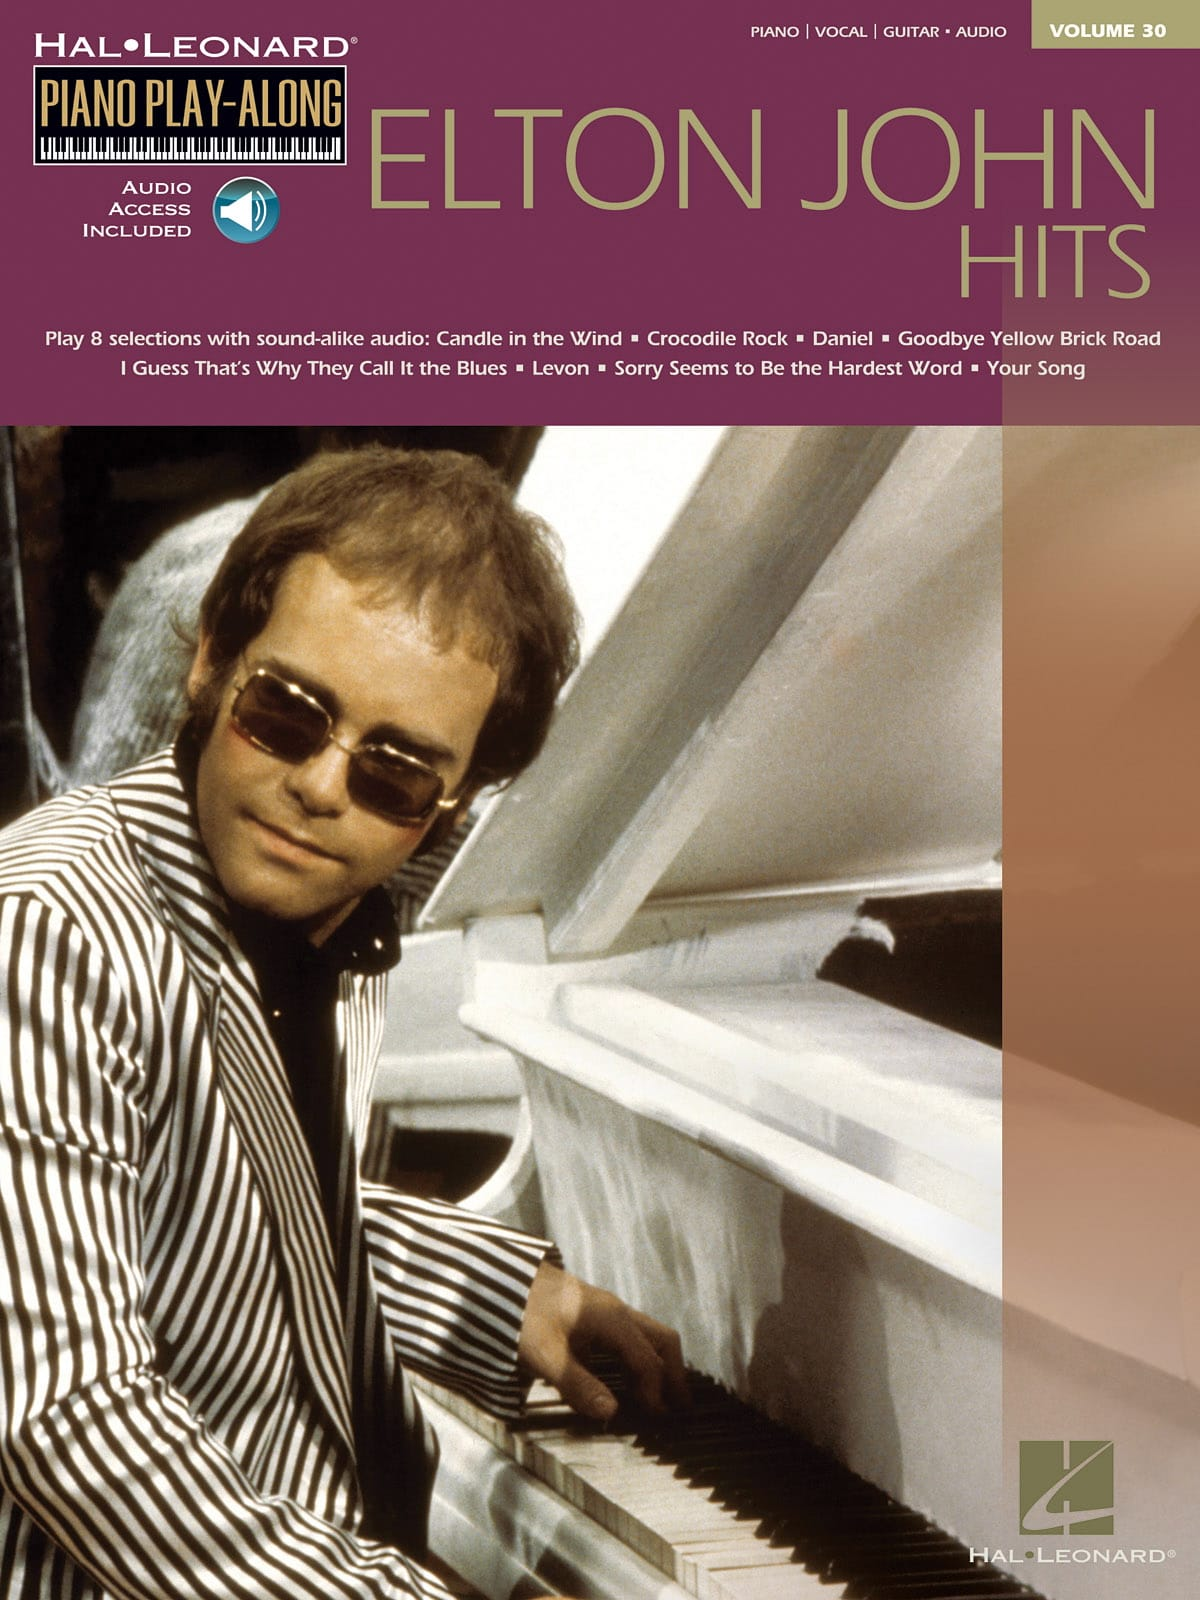 Elton John - Play-Along Klavier Band 30 - Elton John Hits - Partition - di-arezzo.de